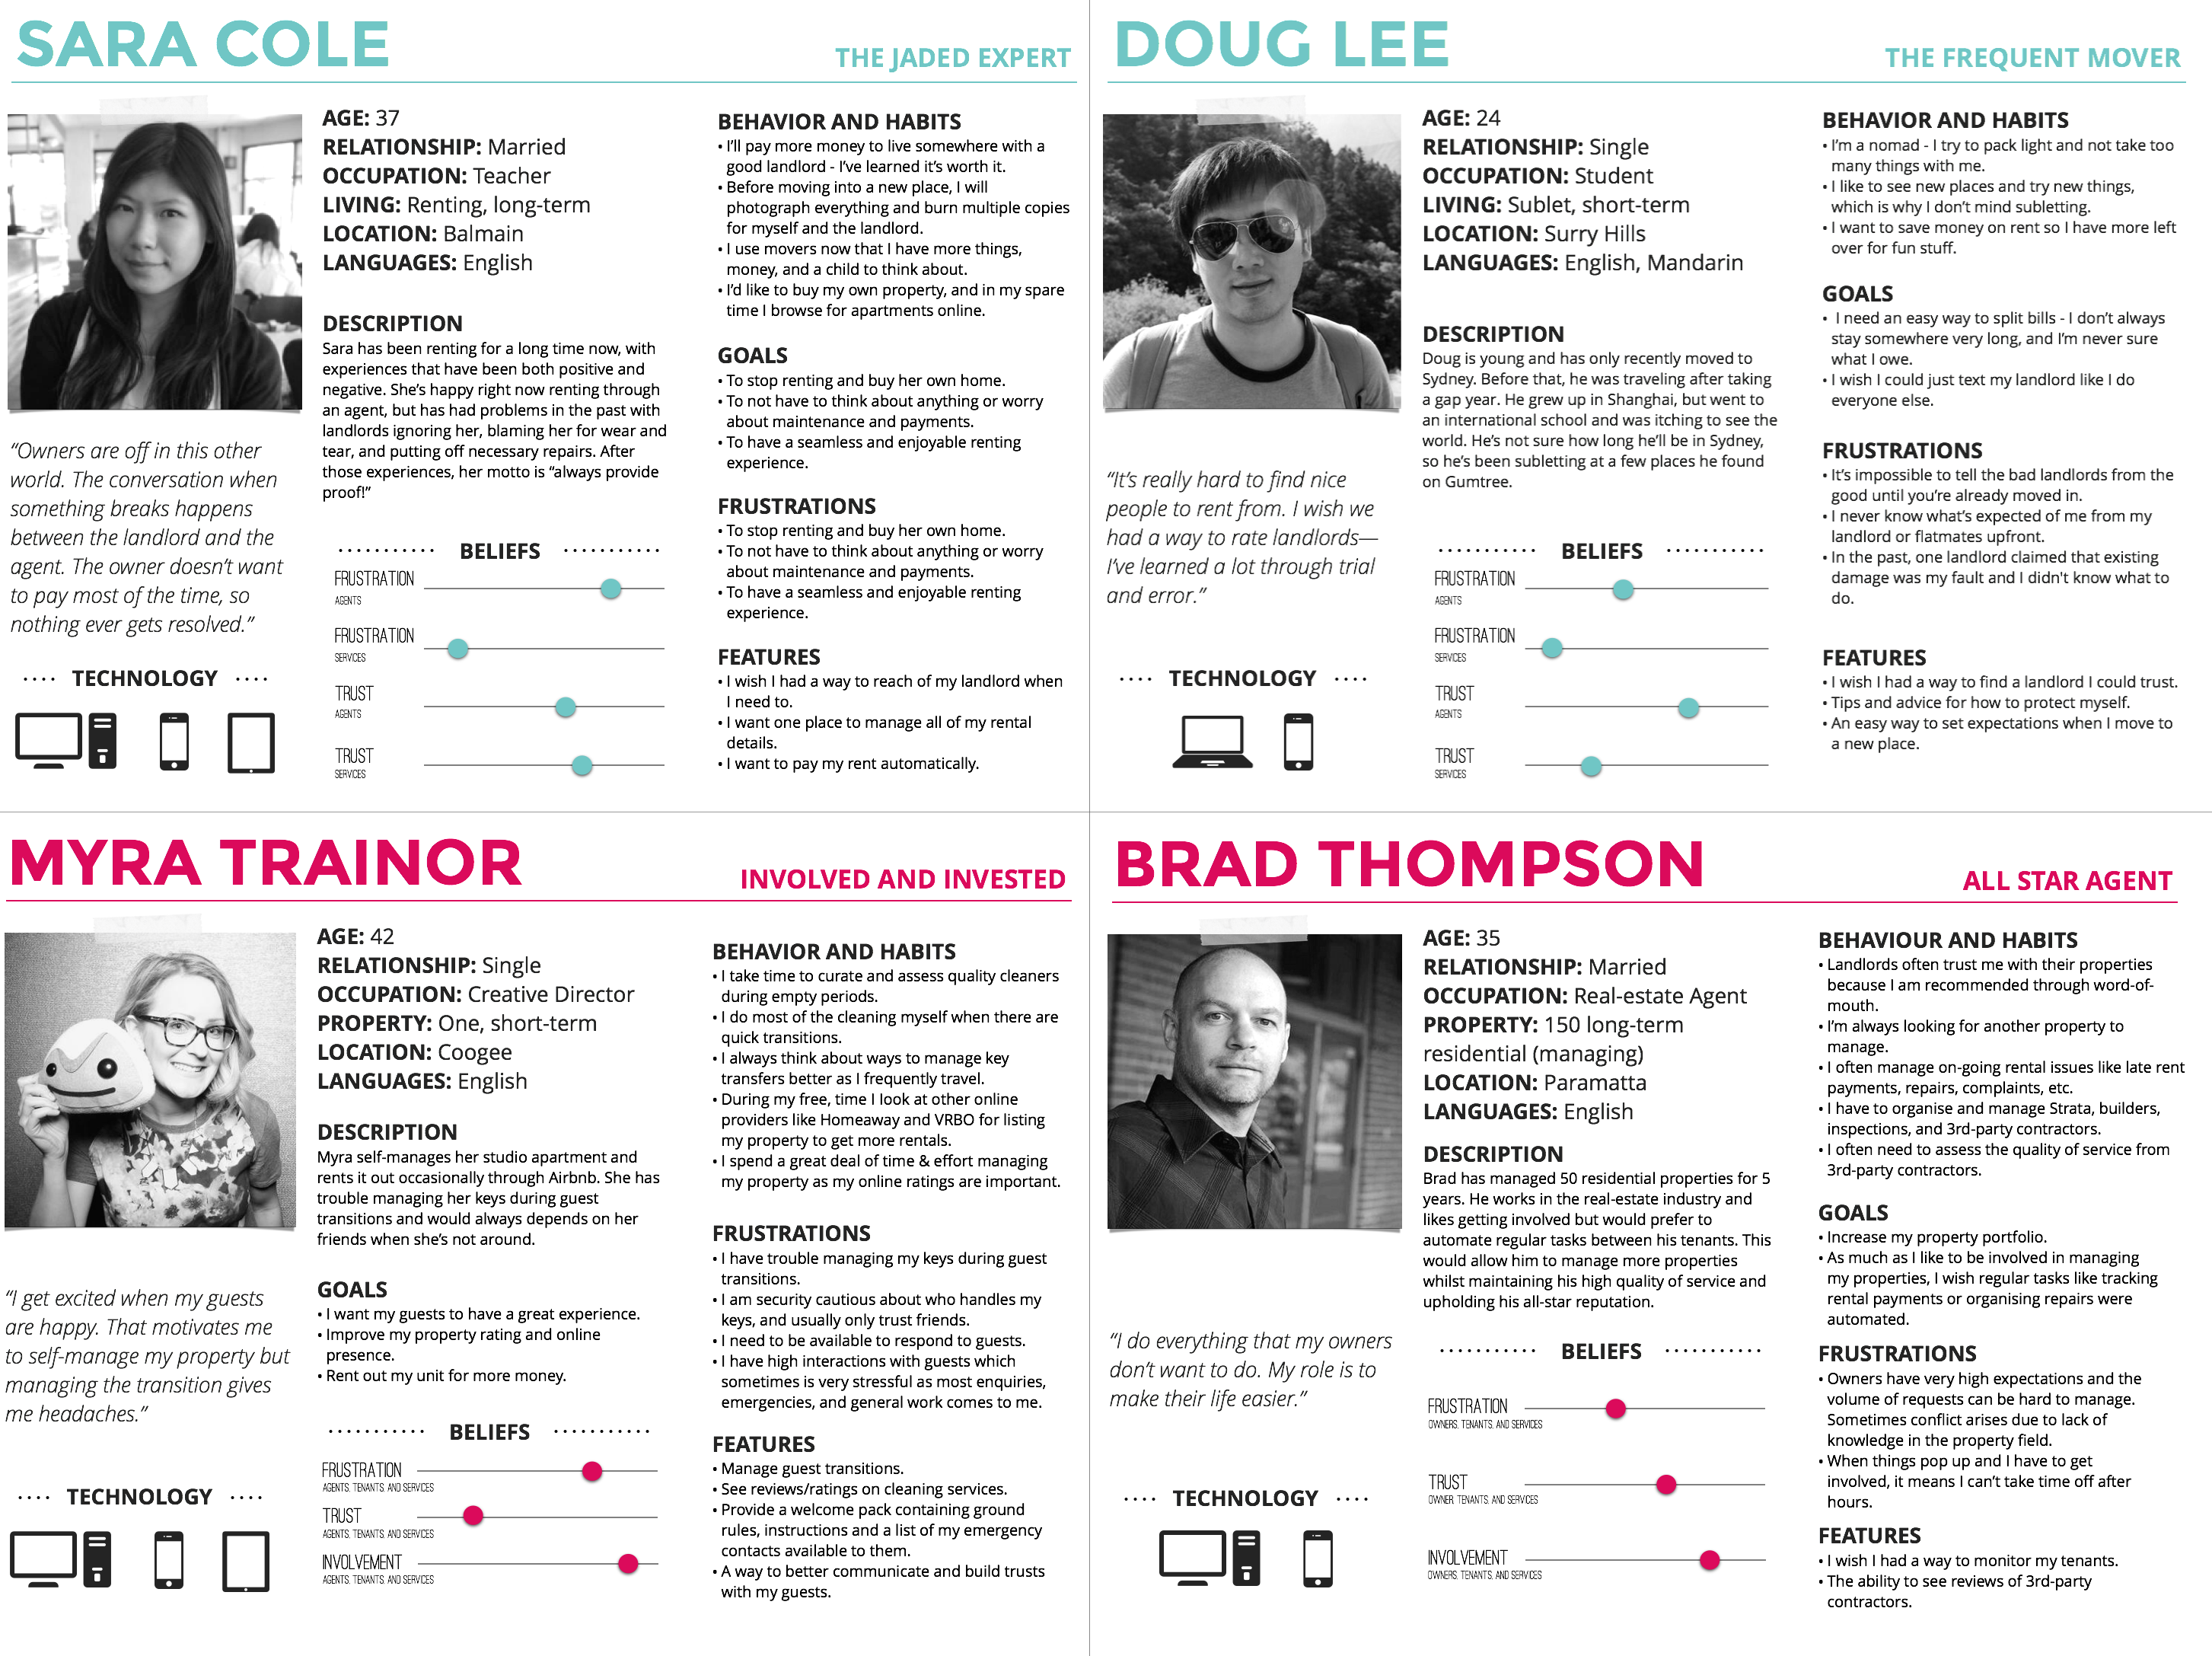 http://www.hengderrick.com/img/project5/personas_full.png